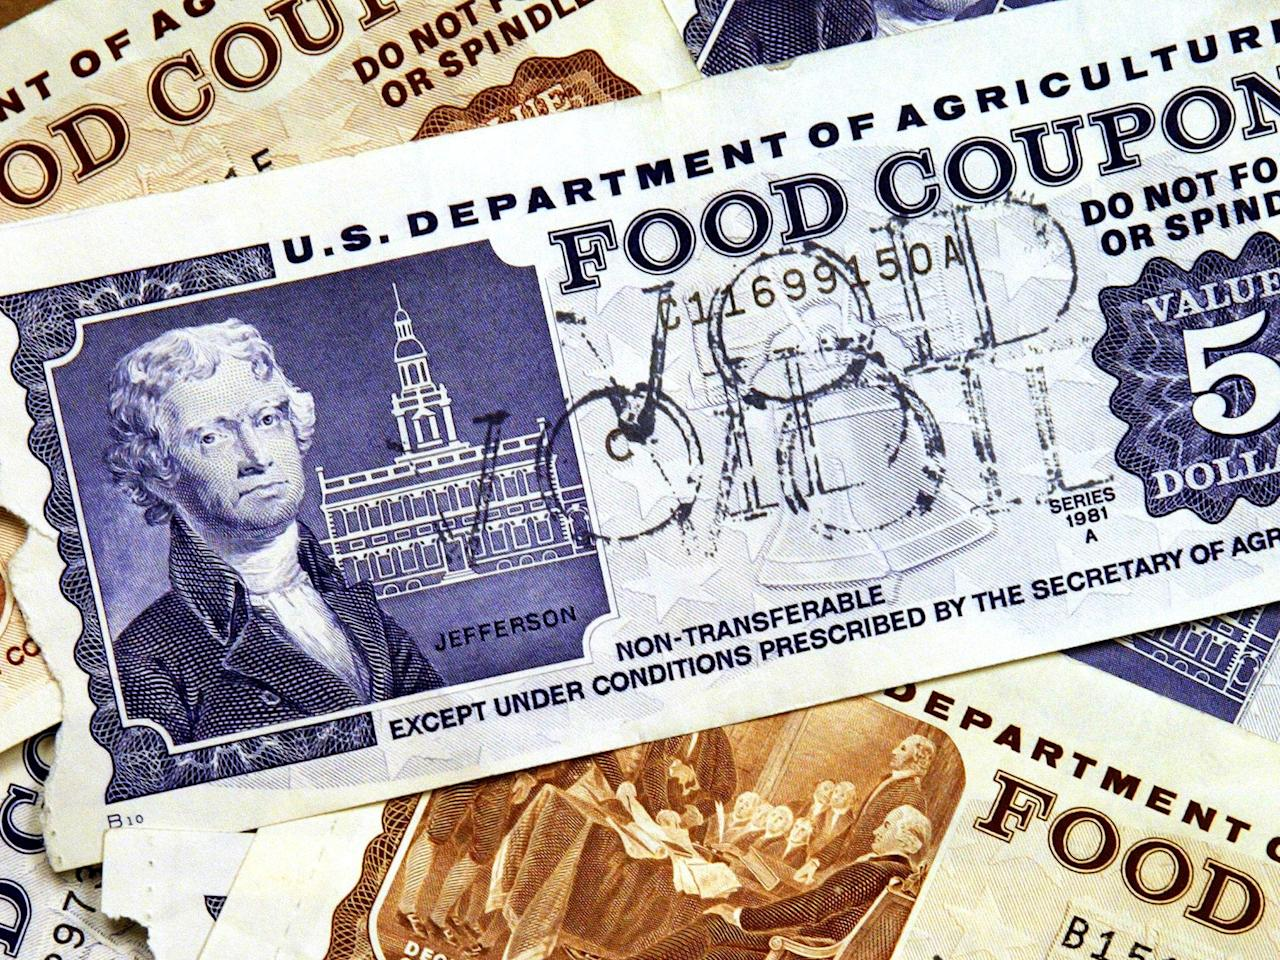 New Trump Food Stamp Rule Will Cut 700 000 From Program